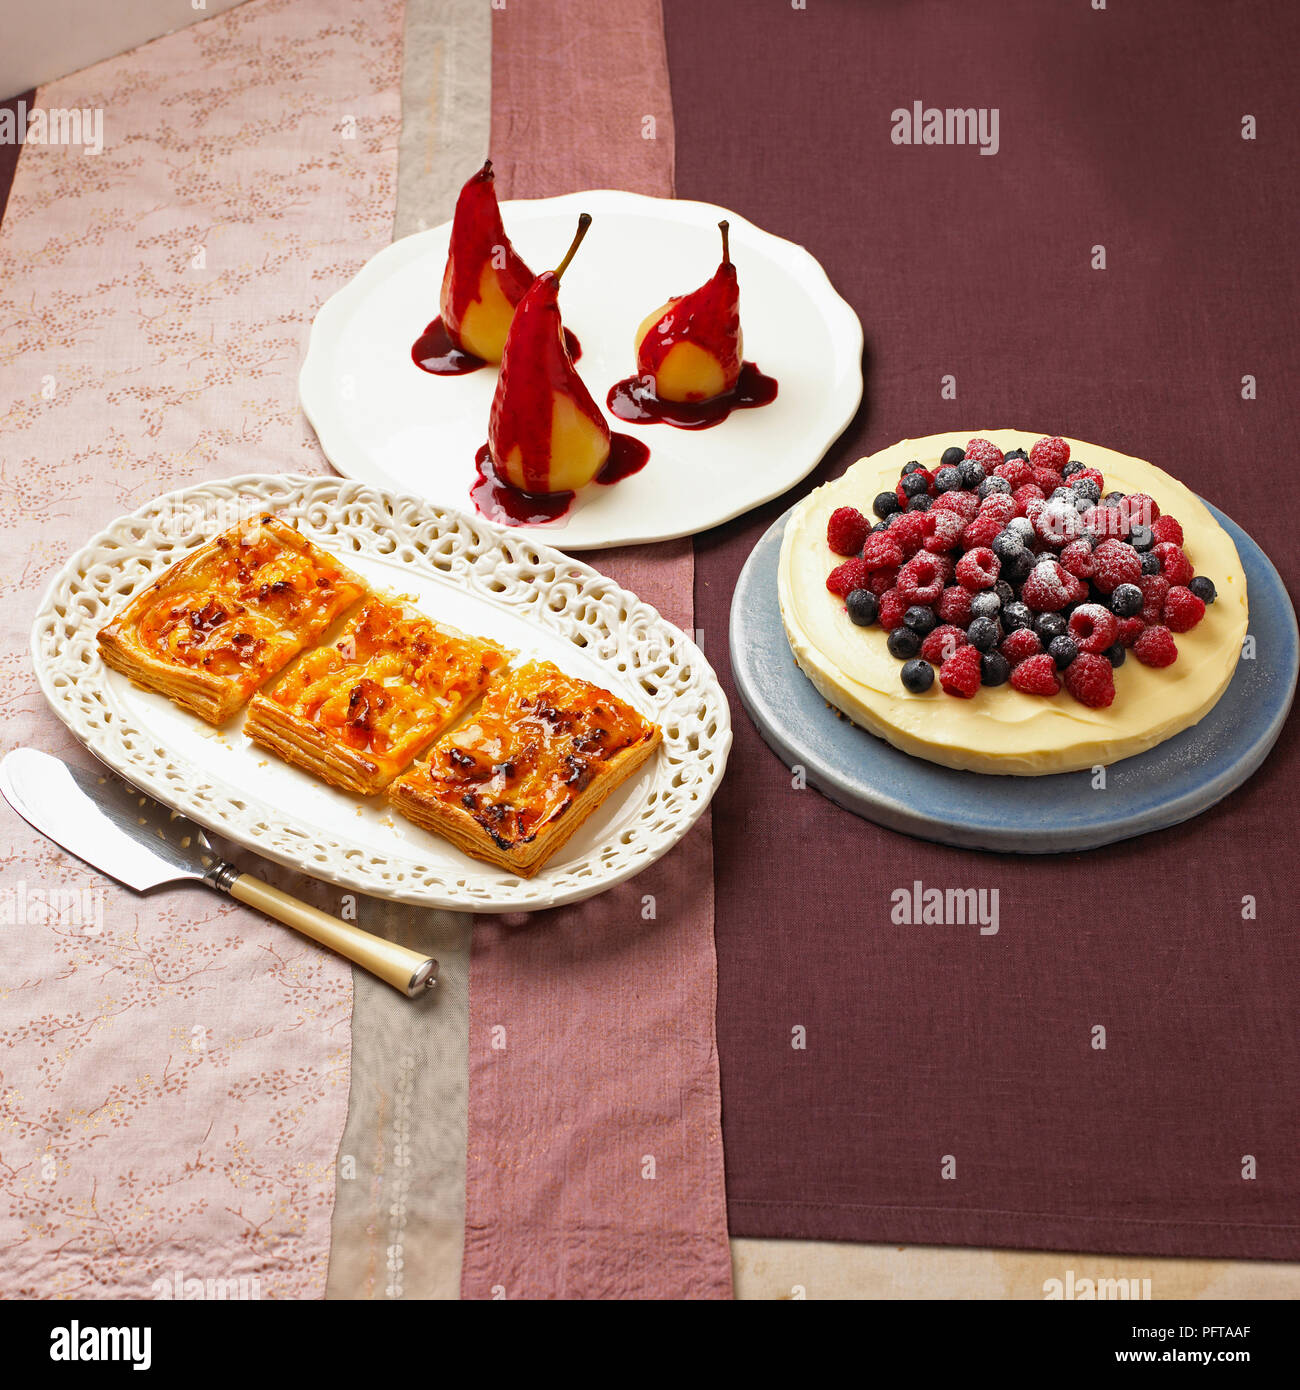 Dessert collection, apricot and almond galette, poached pears with blackberry sauce, lemon cheesecake topped with fresh berries - Stock Image